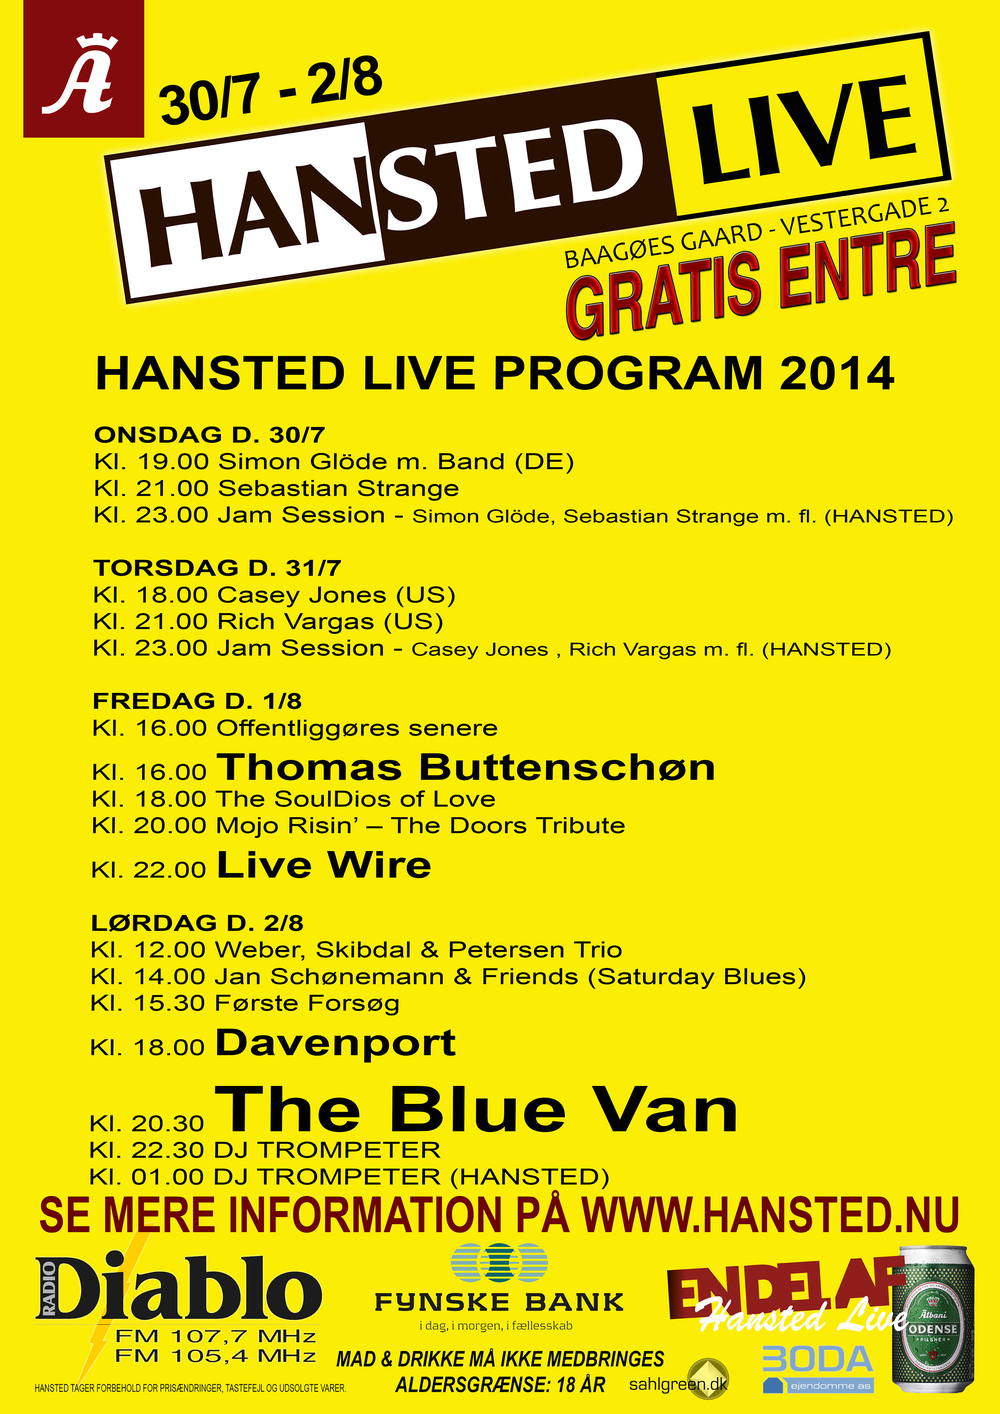 Hansted Live Plakat 2014 Program.jpg